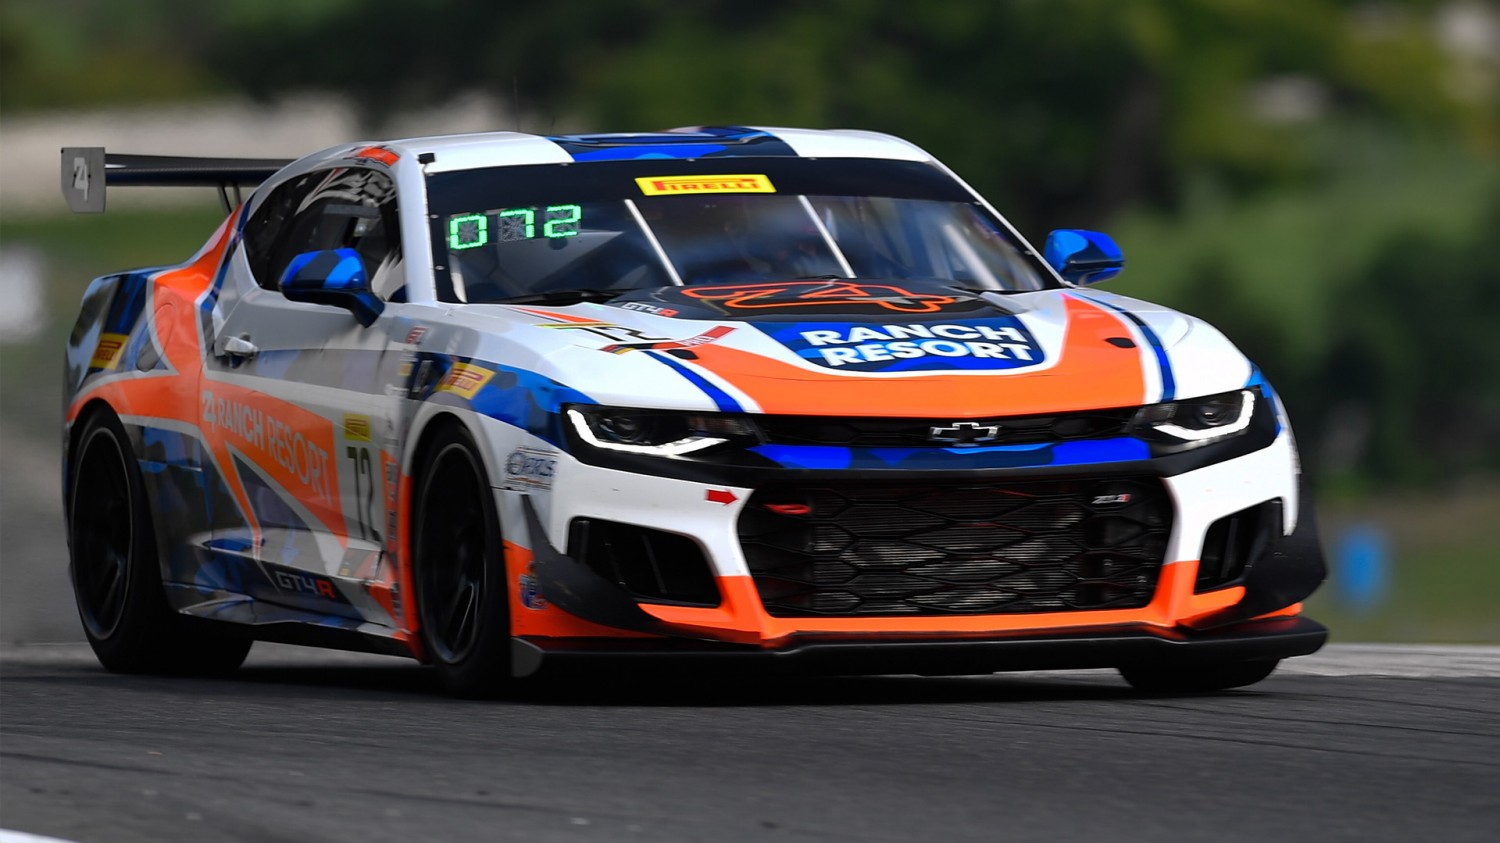 Shane Lewis takes Pirelli GT4 America Sprint Race 1 Pole at Road America